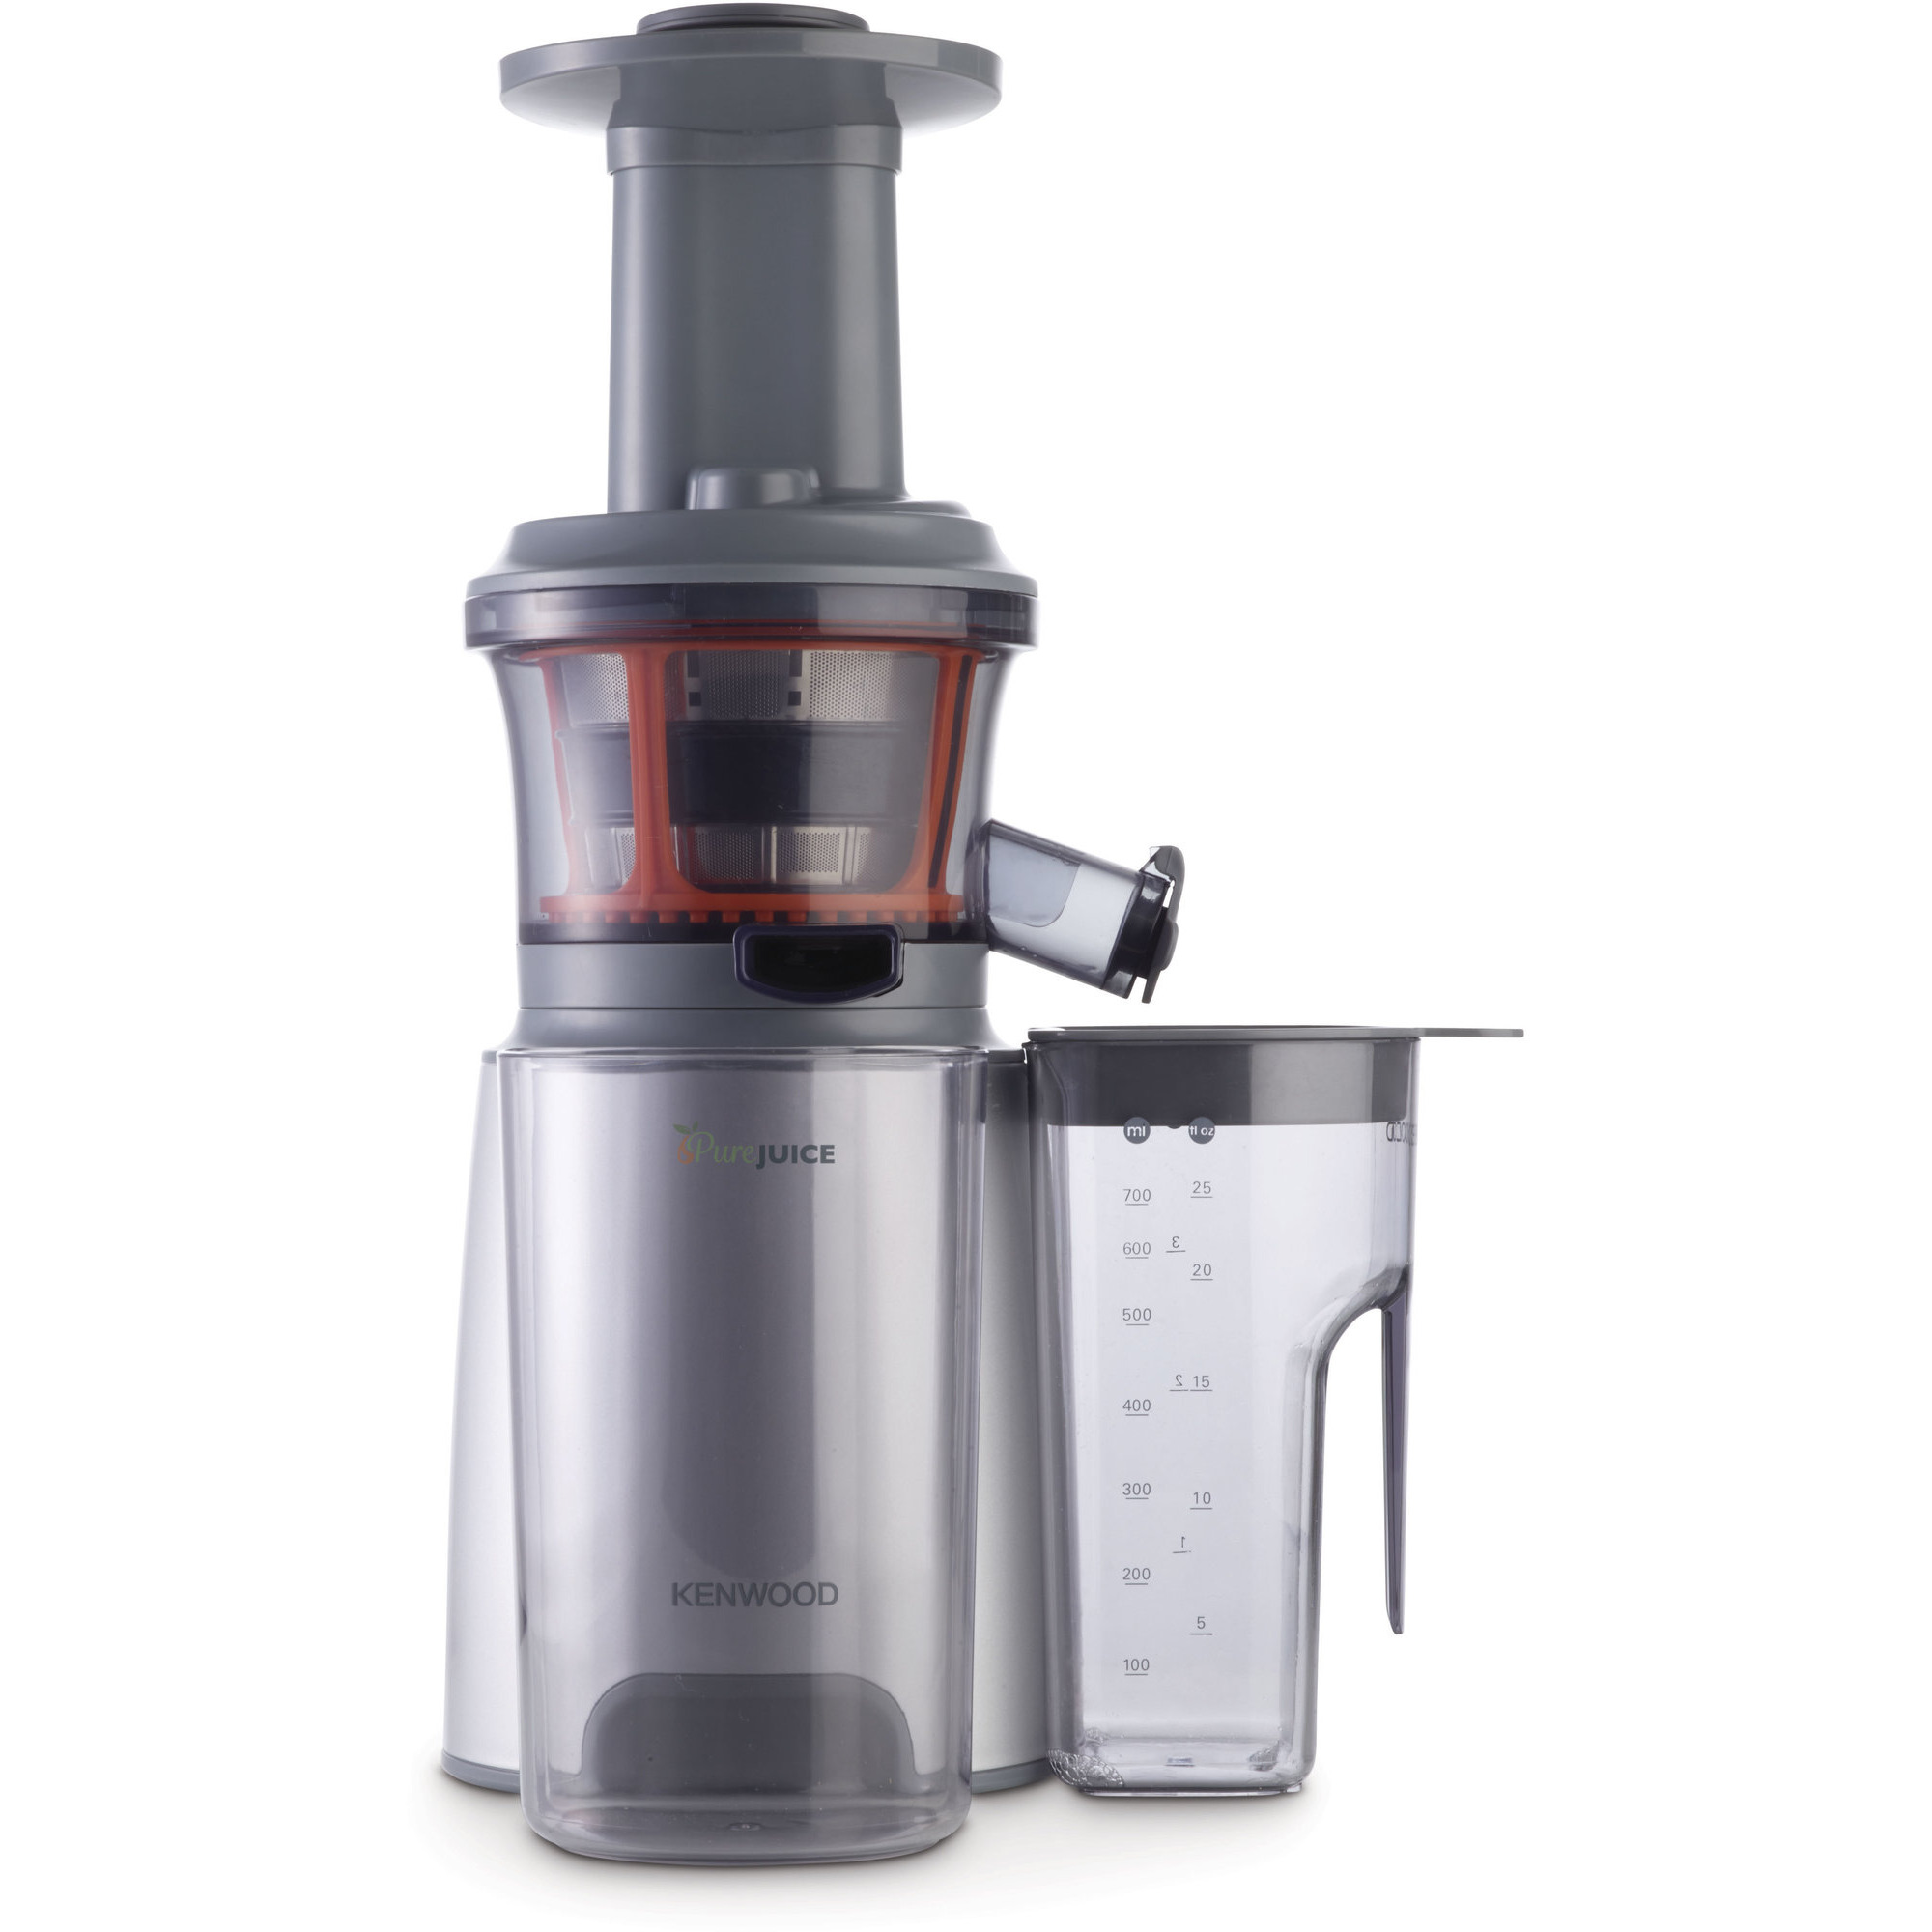 Kenwood Purejuice Slow Juicer Test : JMP601SI PureJuice Slow Juicer fra Kenwood Gratis Levering